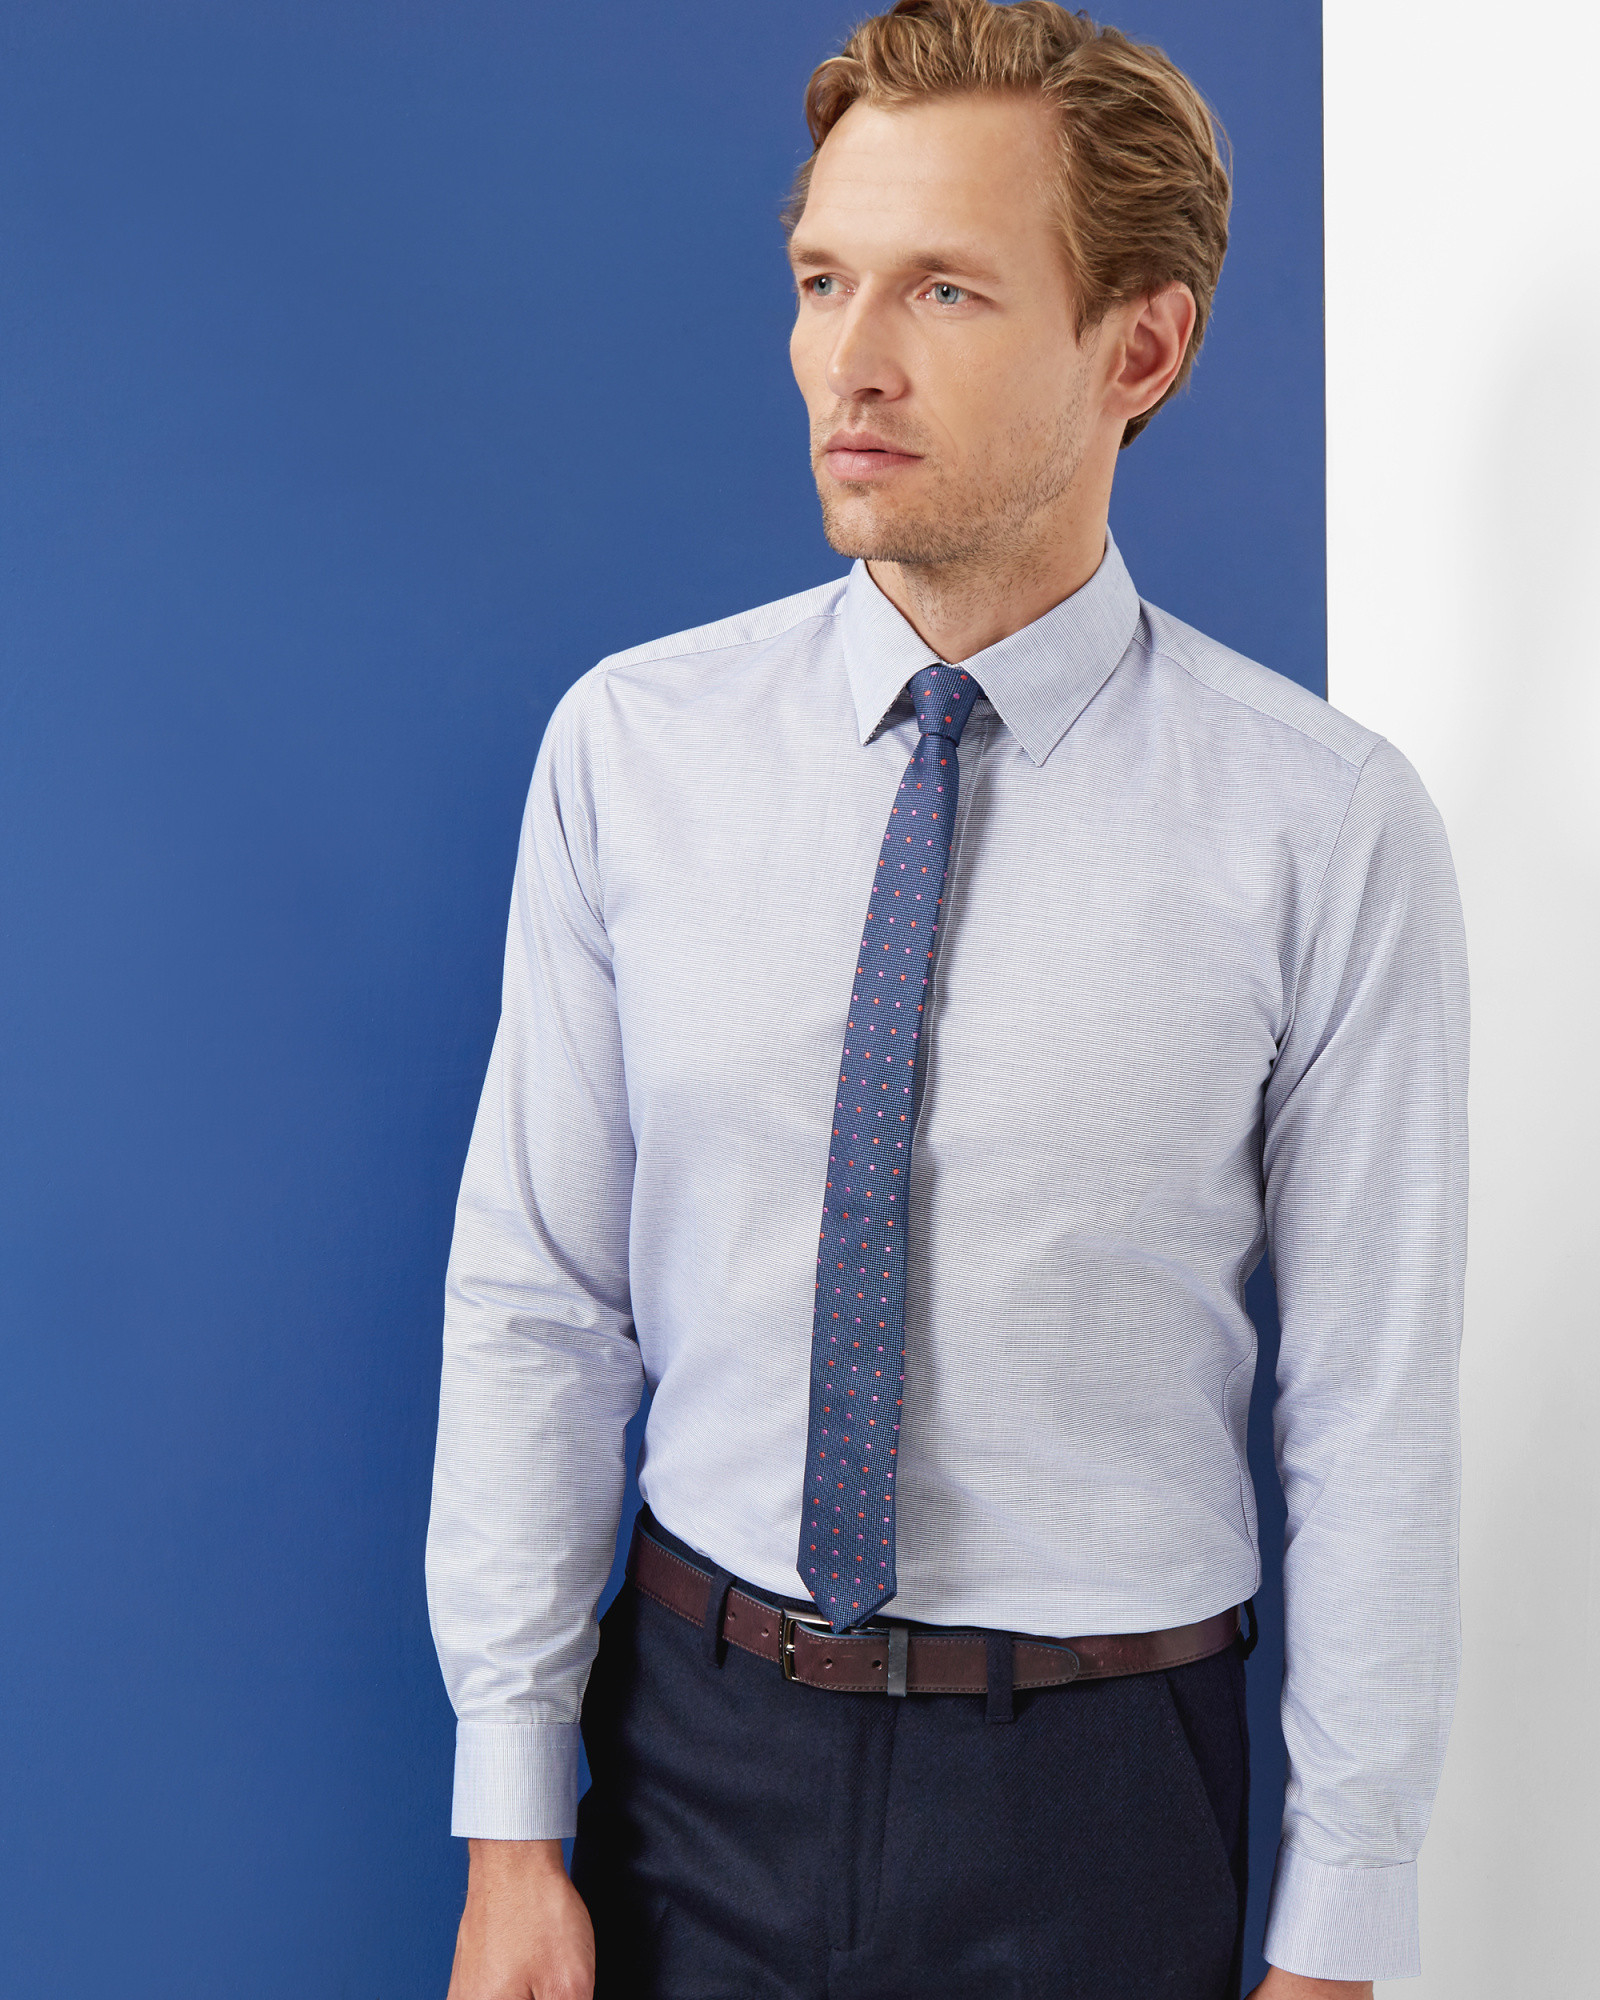 Lyst ted baker horizontal striped shirt in blue for men for Horizontal striped dress shirts men